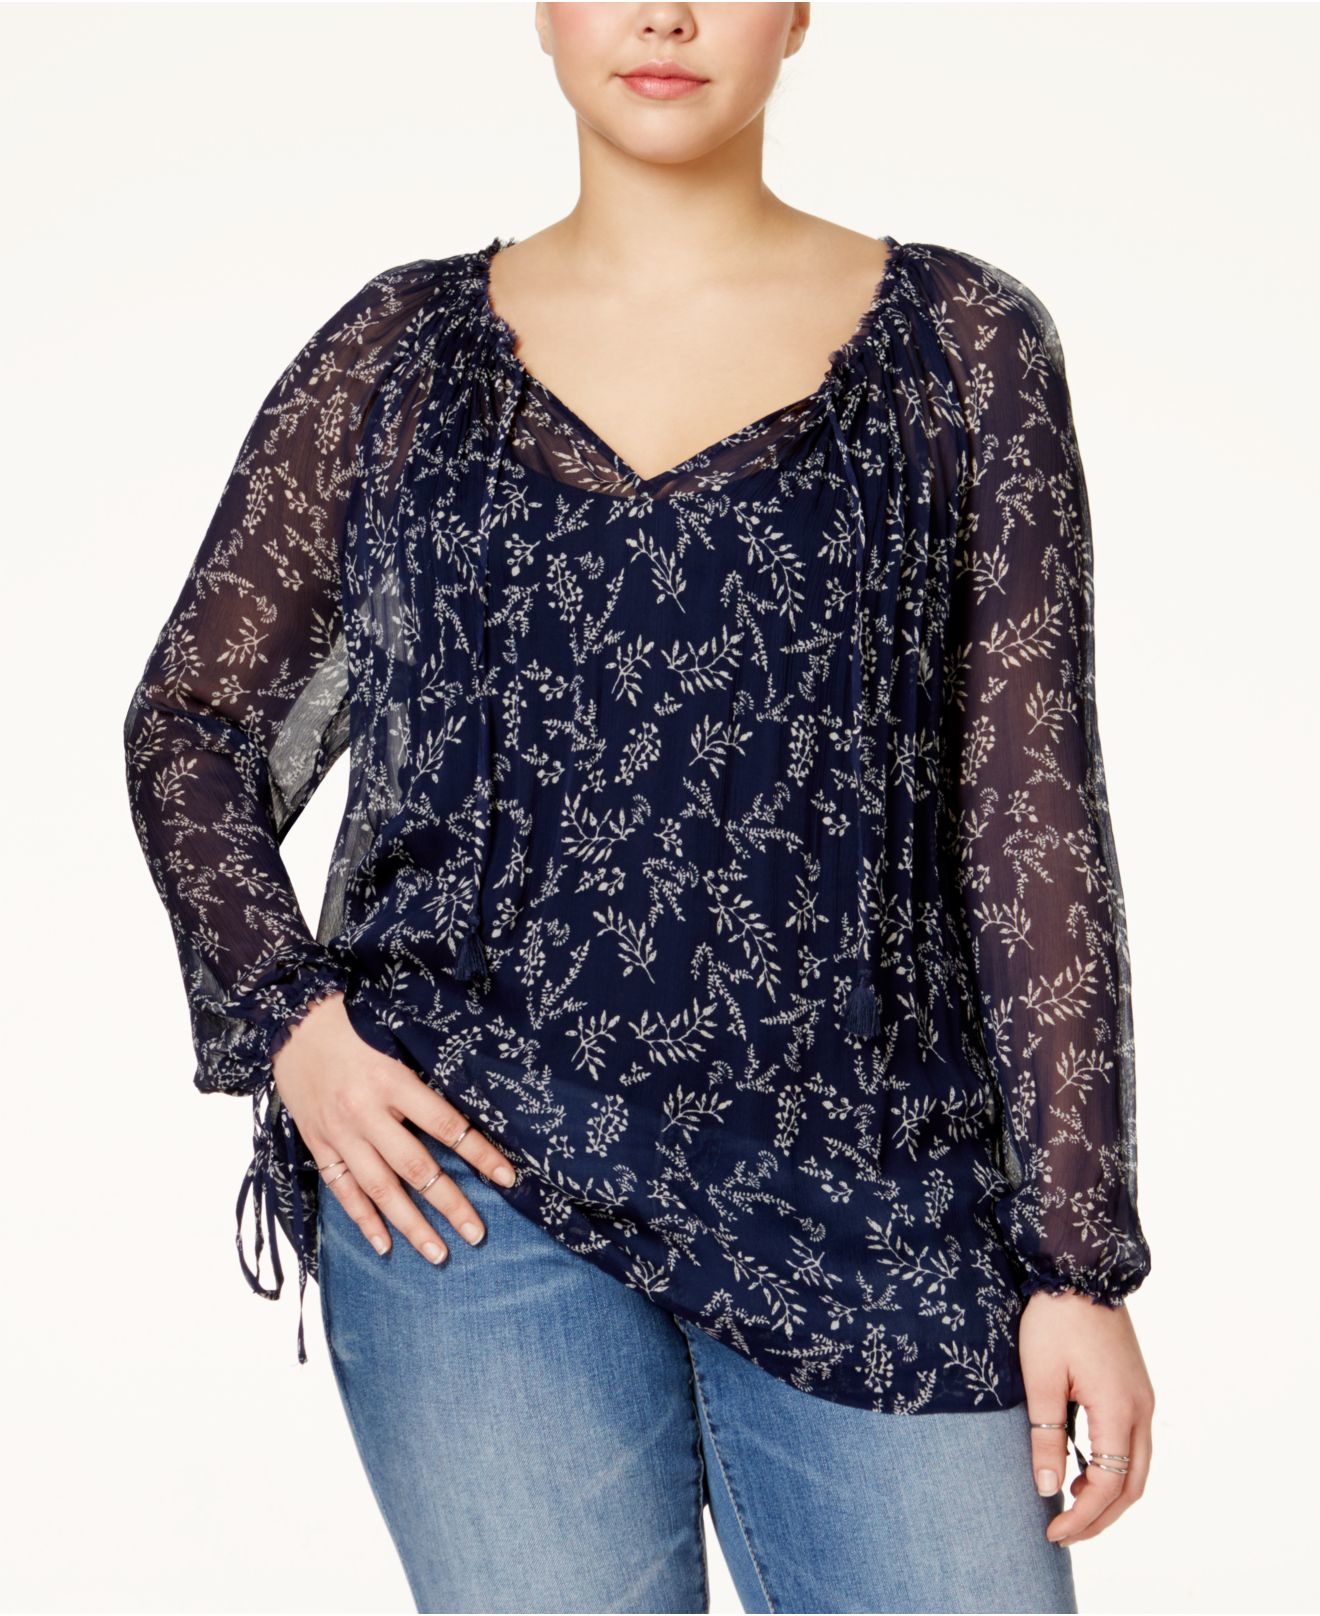 2fafeaee26b0 Lyst - Lucky Brand Plus Size Floral-print Peasant Top in Blue